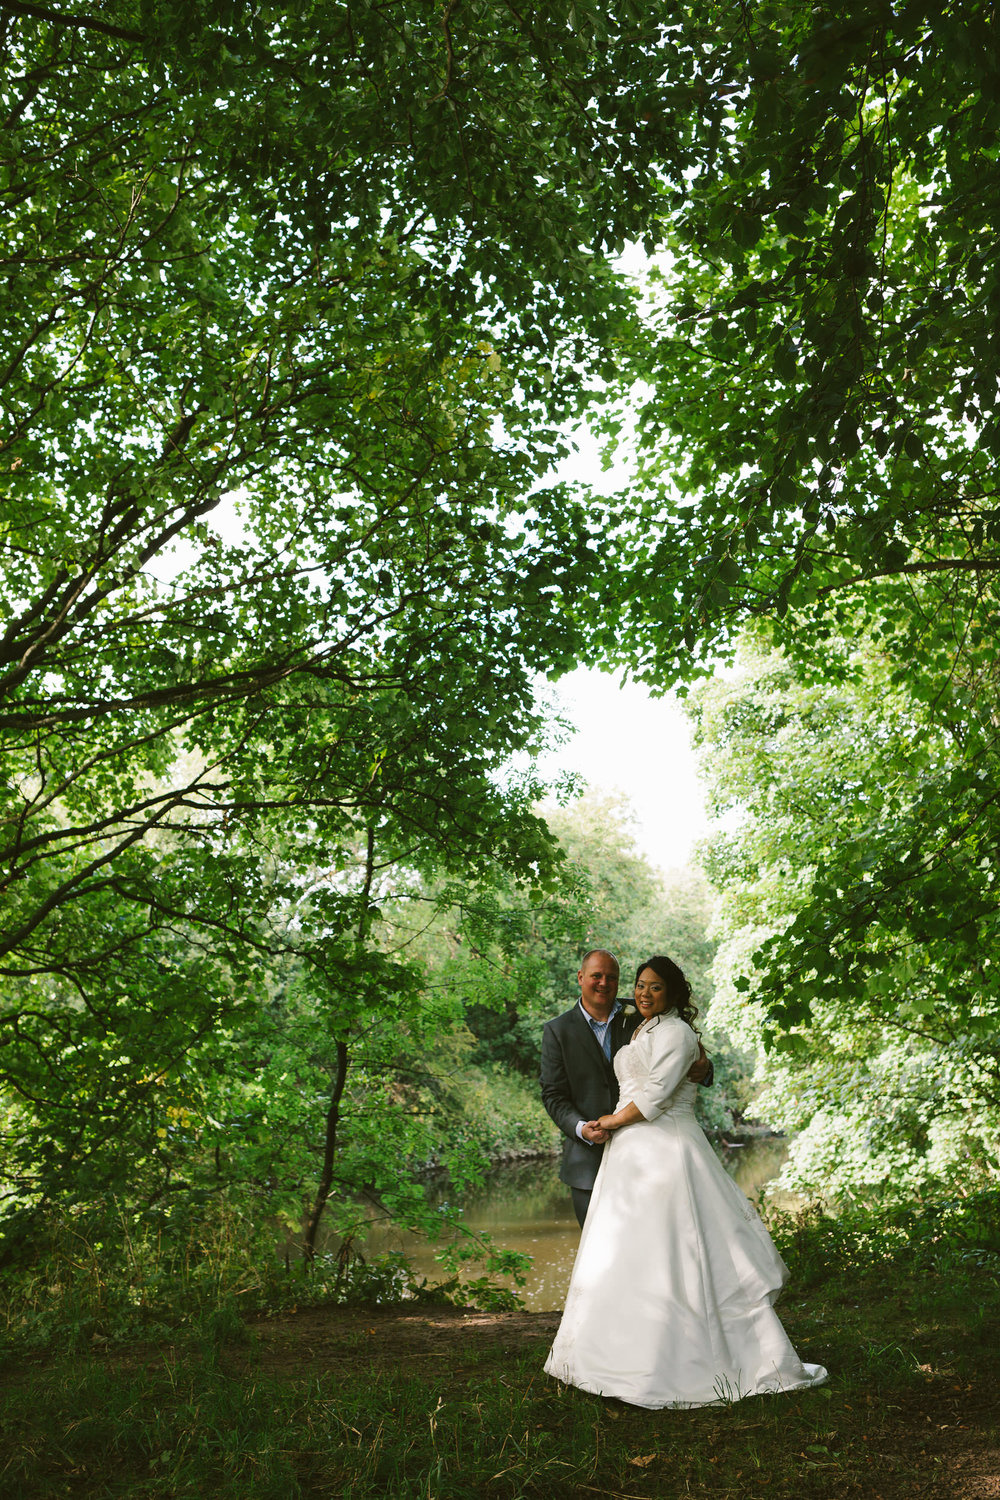 Bride and groom pose under canopy of green trees